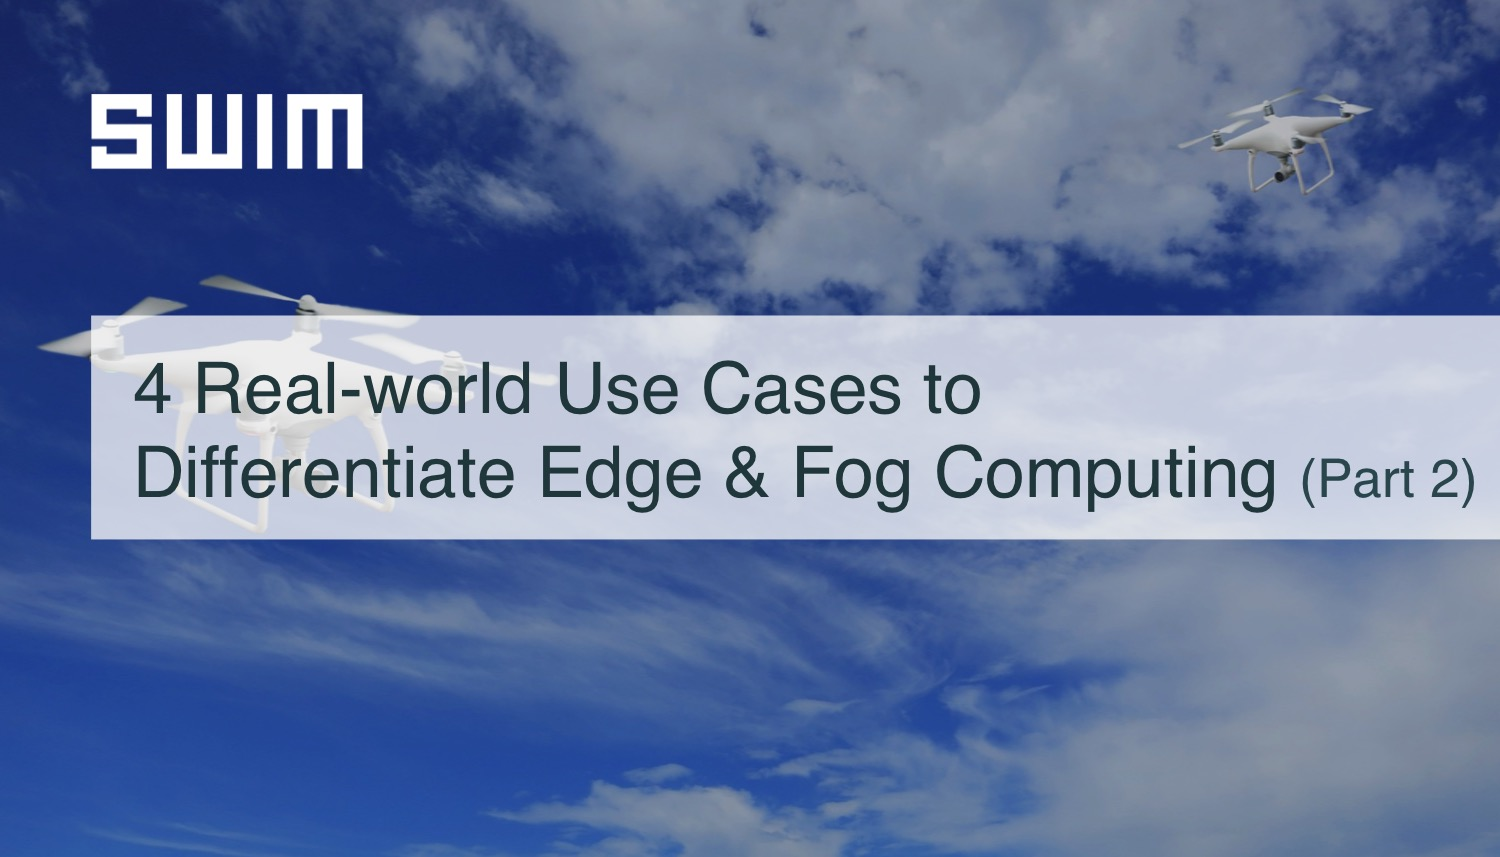 4 Real-world Use Cases to Differentiate Edge Computing & Fog Computing (Part 2)   Swim Inc.